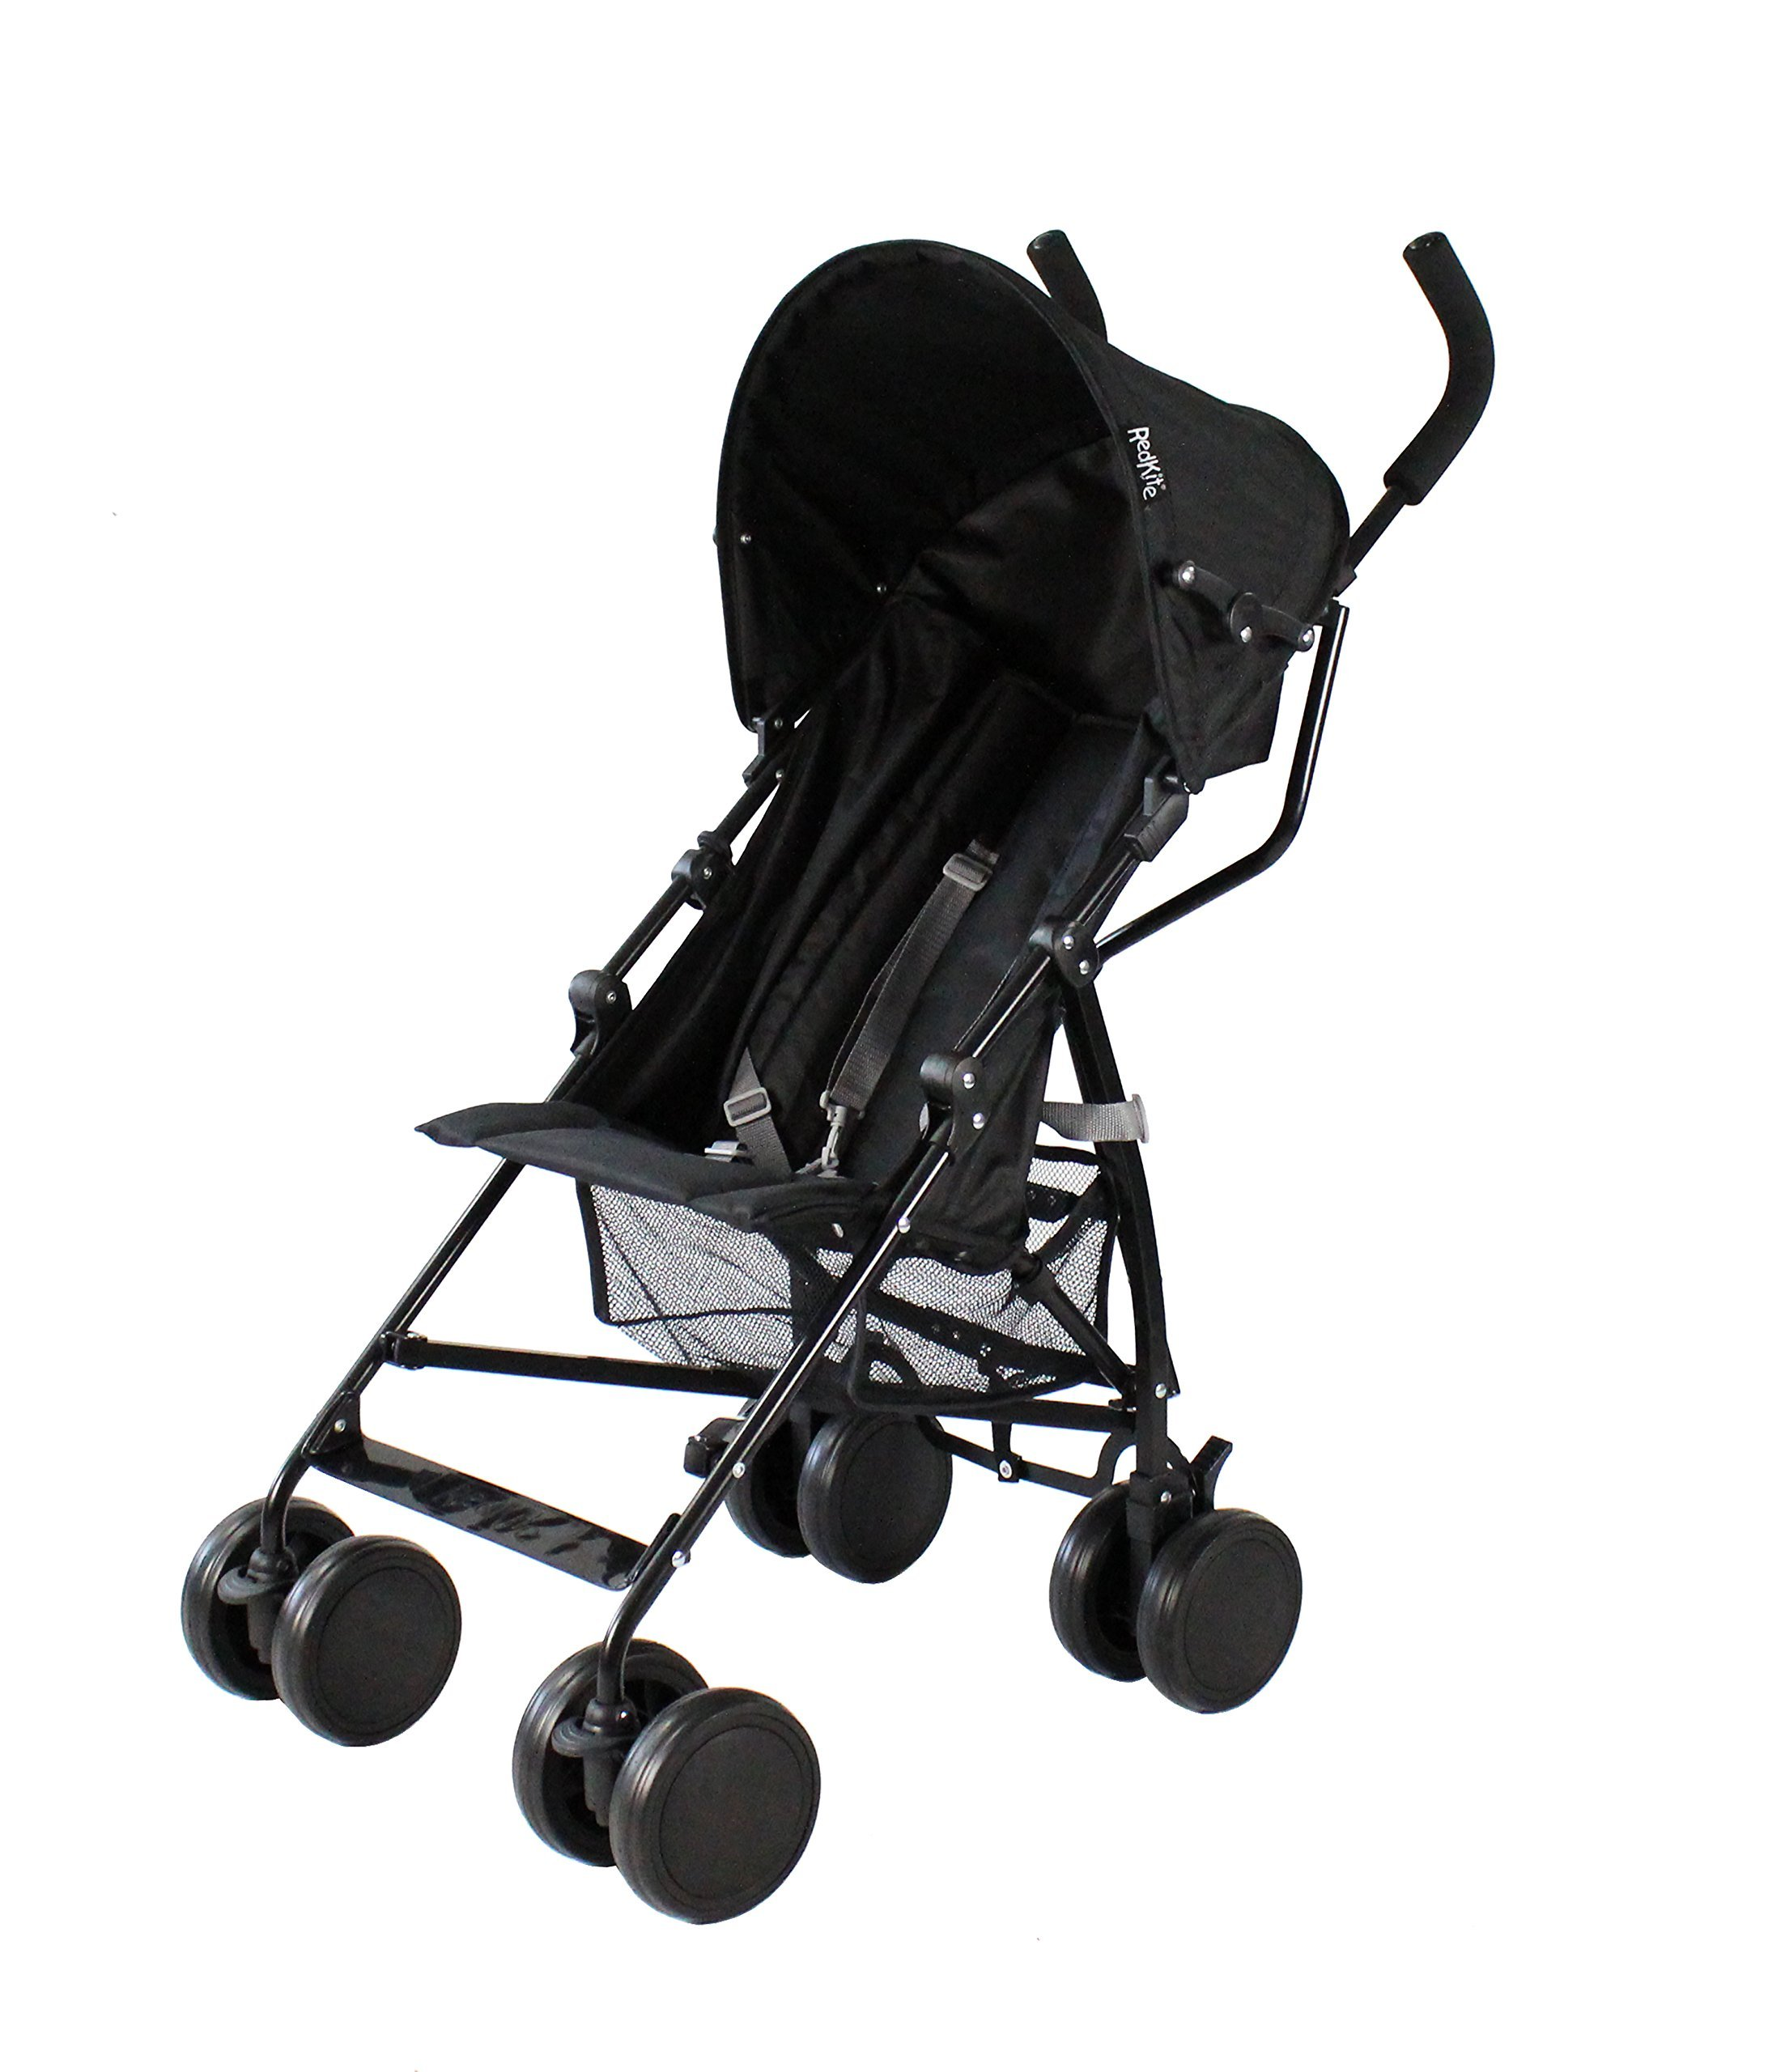 Red Kite Baby Push Me 2U (Midnight) Red Kite Baby Suitable from 6 months Includes shopping basket and raincover Lockable front swivel wheels. Detachable hood 1